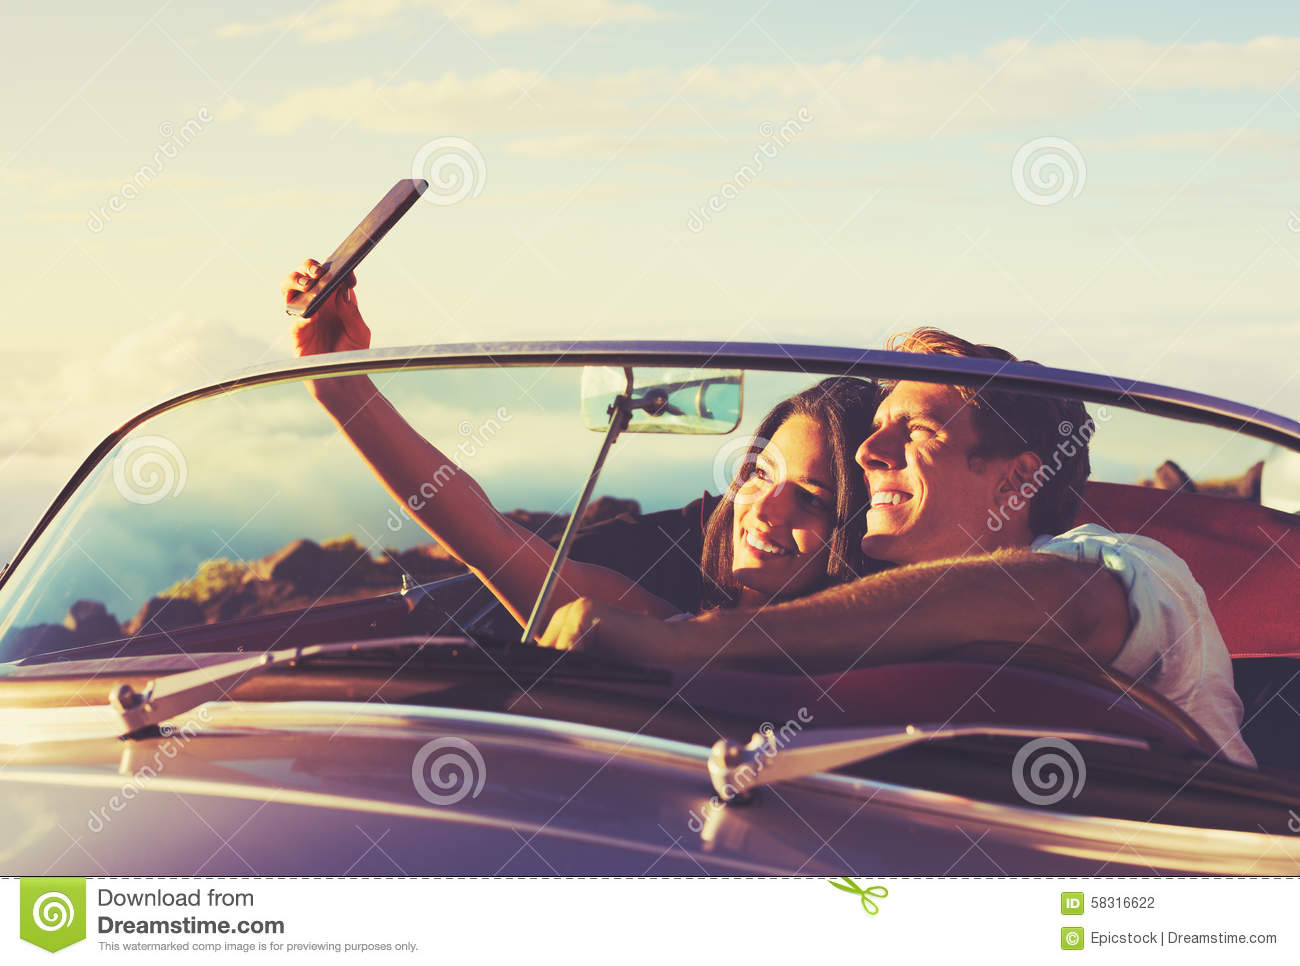 Couple Taking A Selfie In Car At Sunset Stock Photo Image Of Happiness Happy 58316622